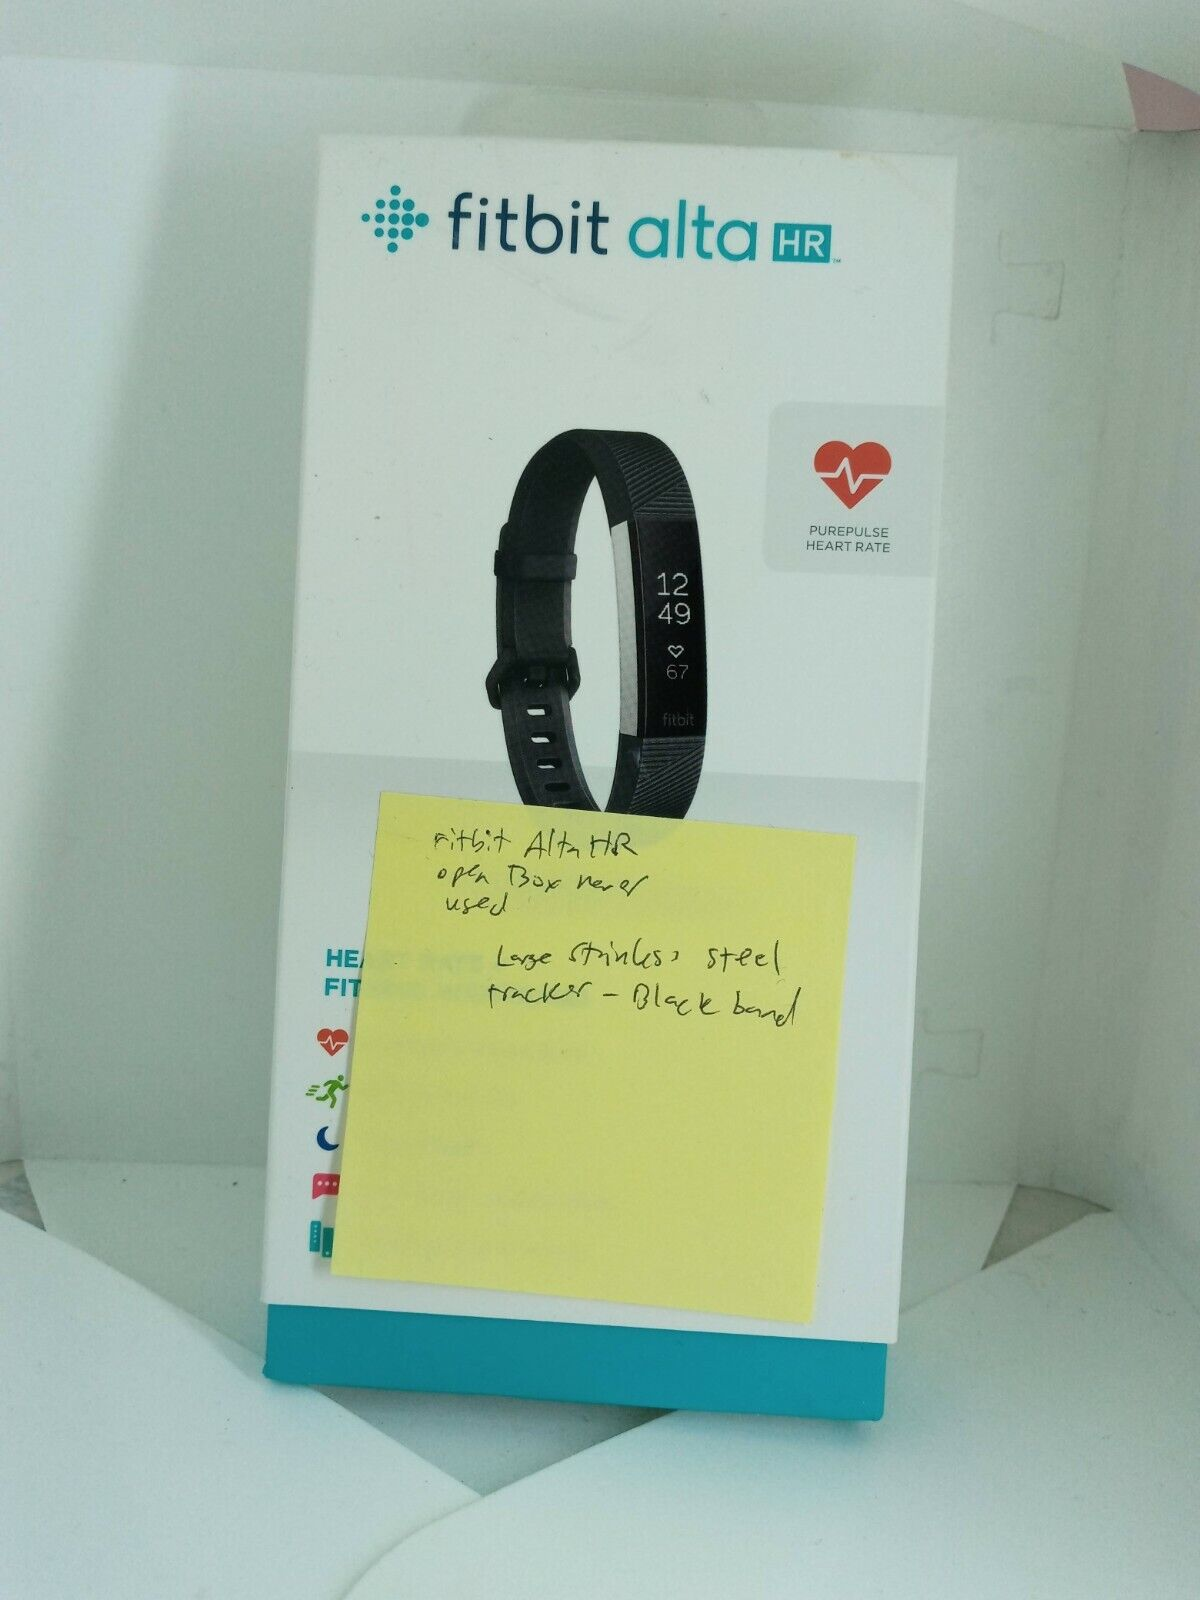 NEW Fitbit Alta HR Activity Fitness Tracker in Black / Stainless Steel - Large activity alta black fitbit fitness large new stainless steel tracker